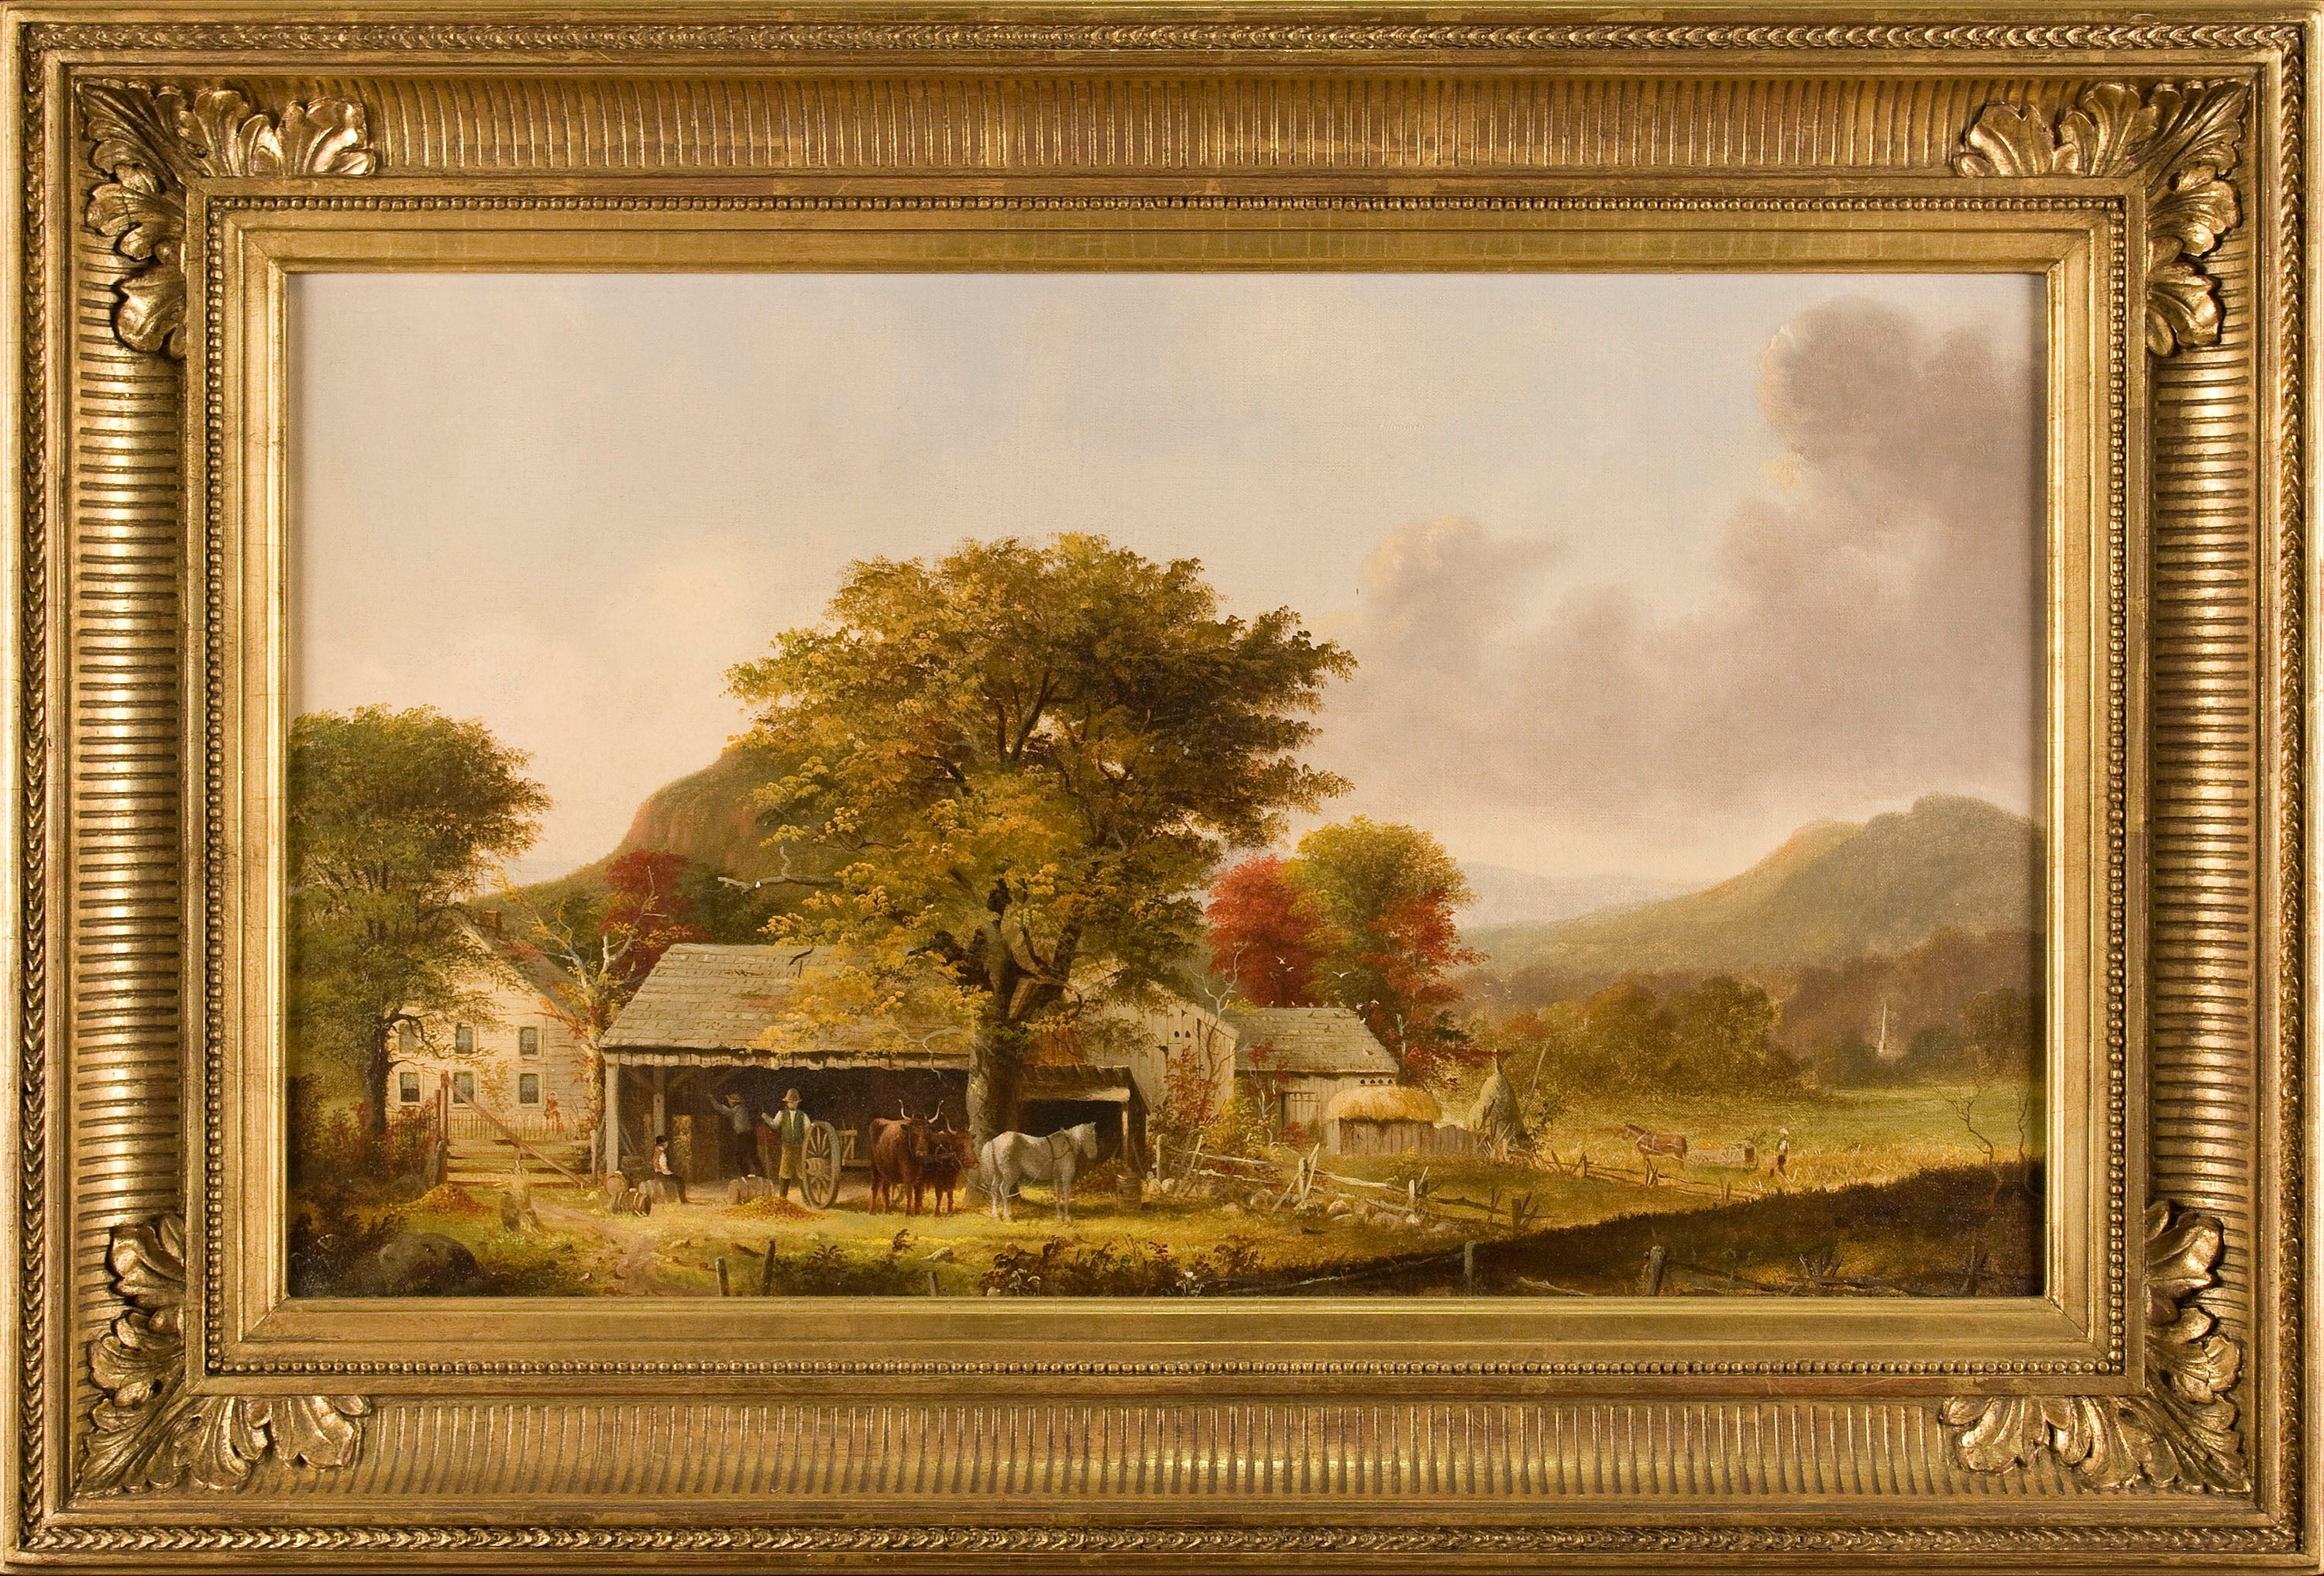 george boice durrie scenes near new haven connecticut autumn and